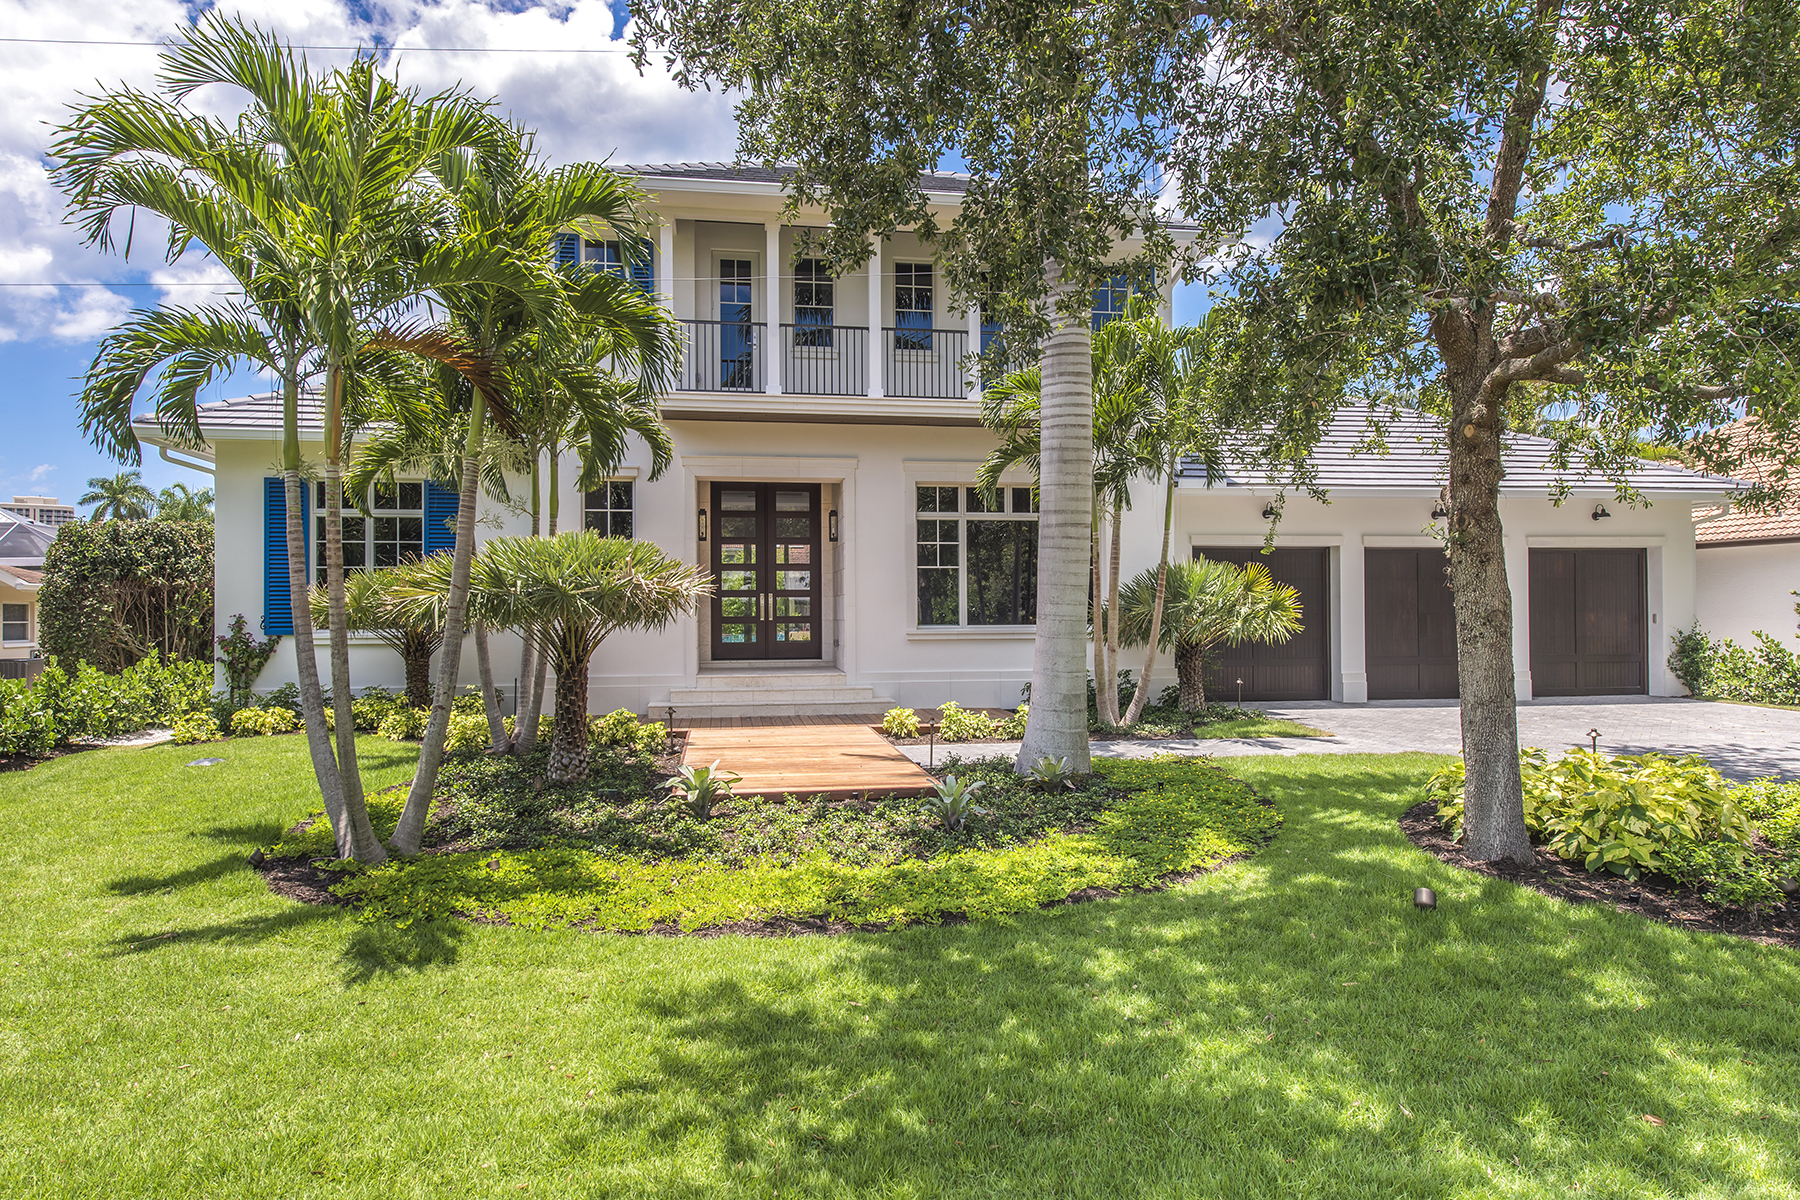 Single Family Home for Sale at Seagate 5139 Sand Dollar Ln, Naples, Florida 34103 United States